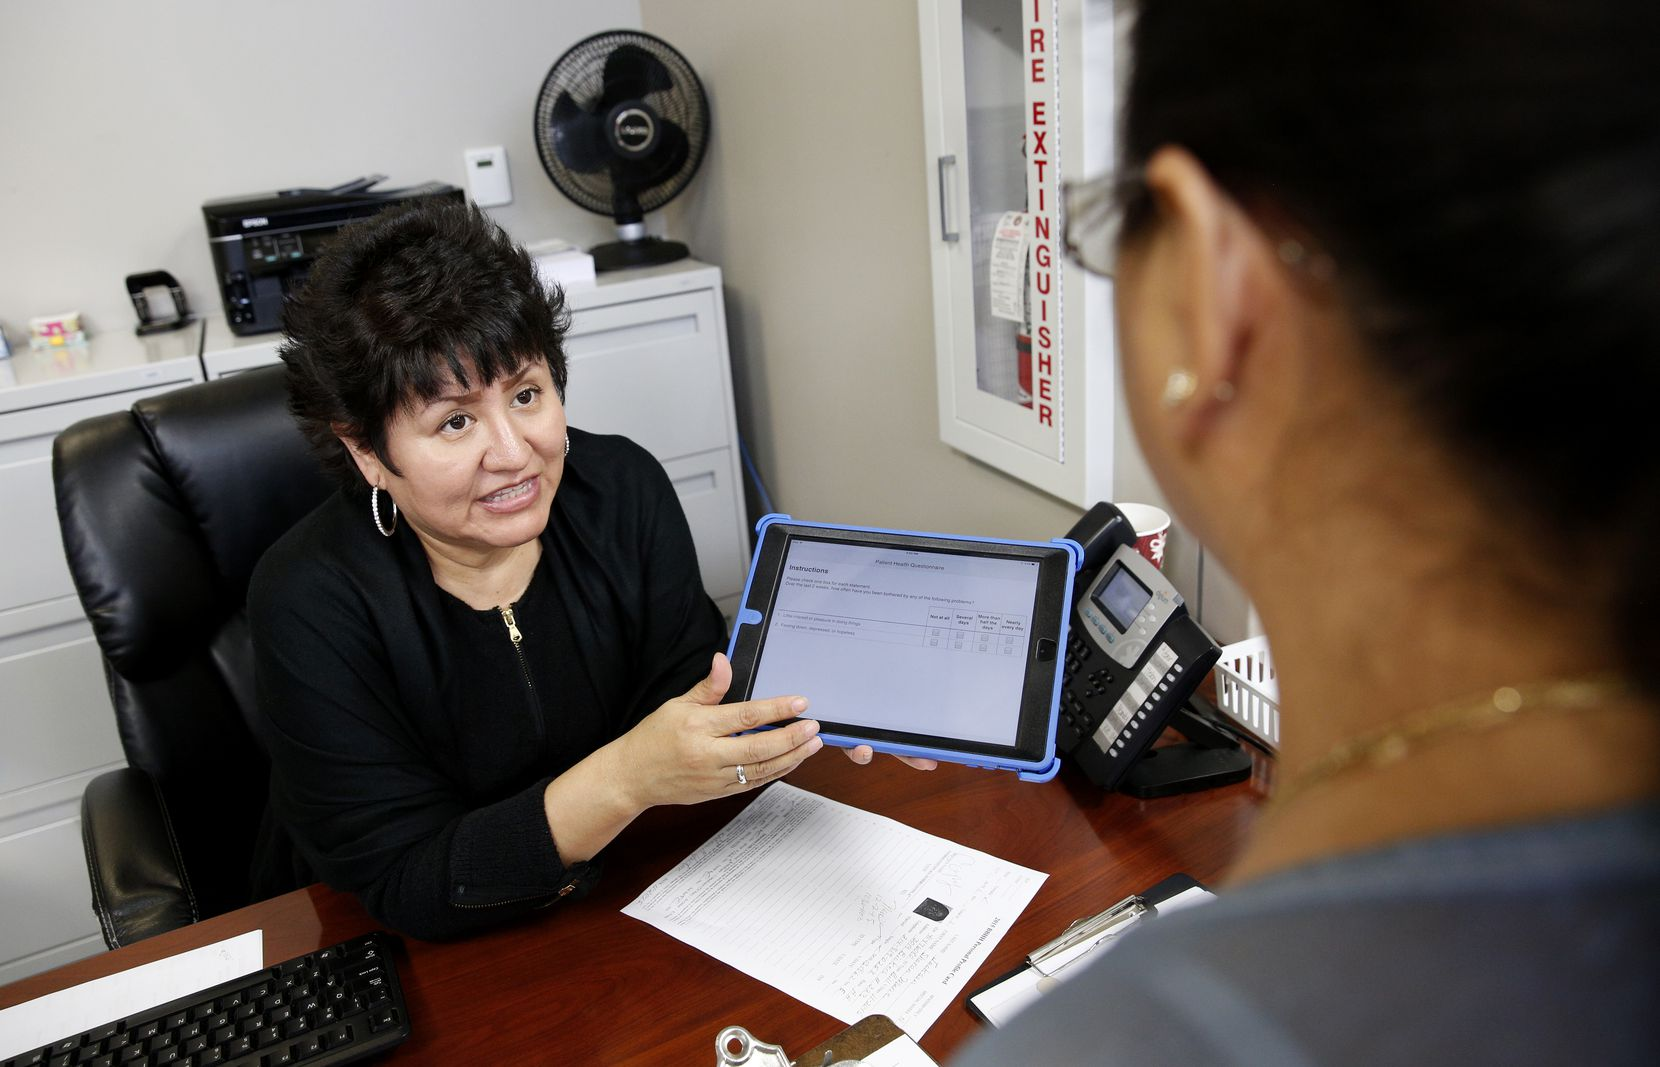 Leticia Balderas, clinic receptionist, explains how to fill out the VitalSign6 survey to patient Maria J. Maldonado at Brother BillÕs Helping Hand in Dallas.